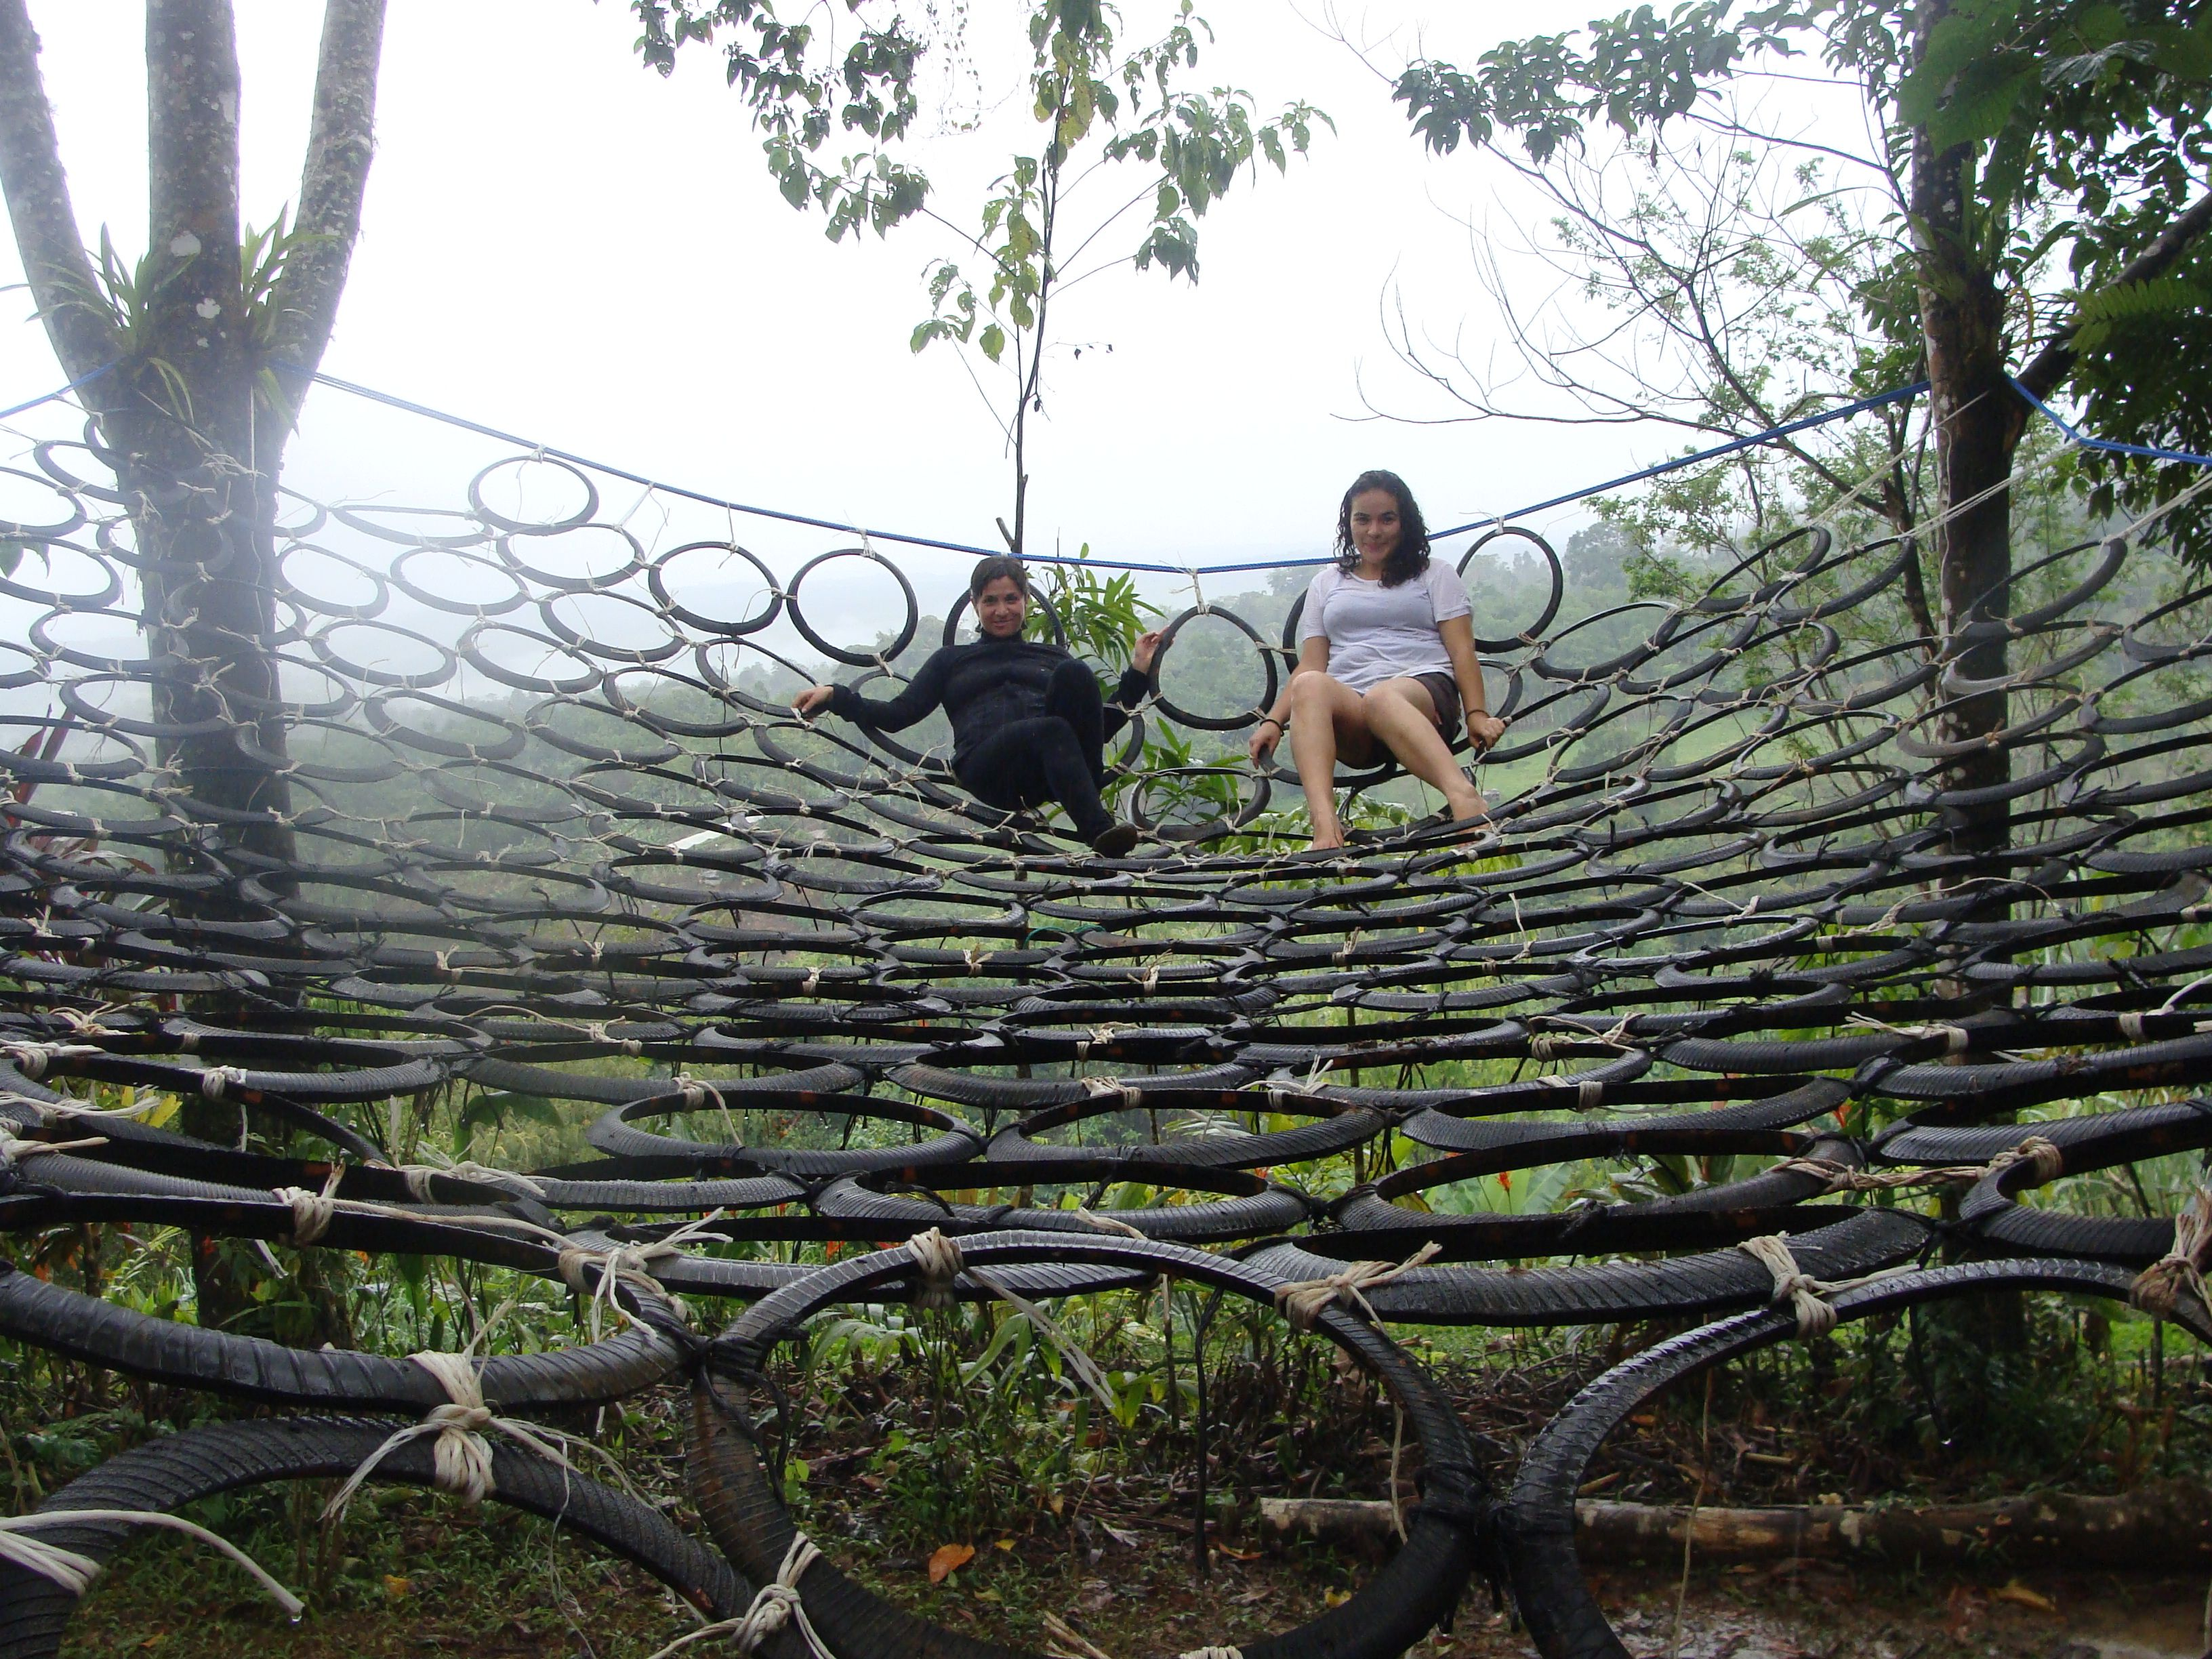 Canopy Trampoline Climbing Wall Made Of Used Bike Tires